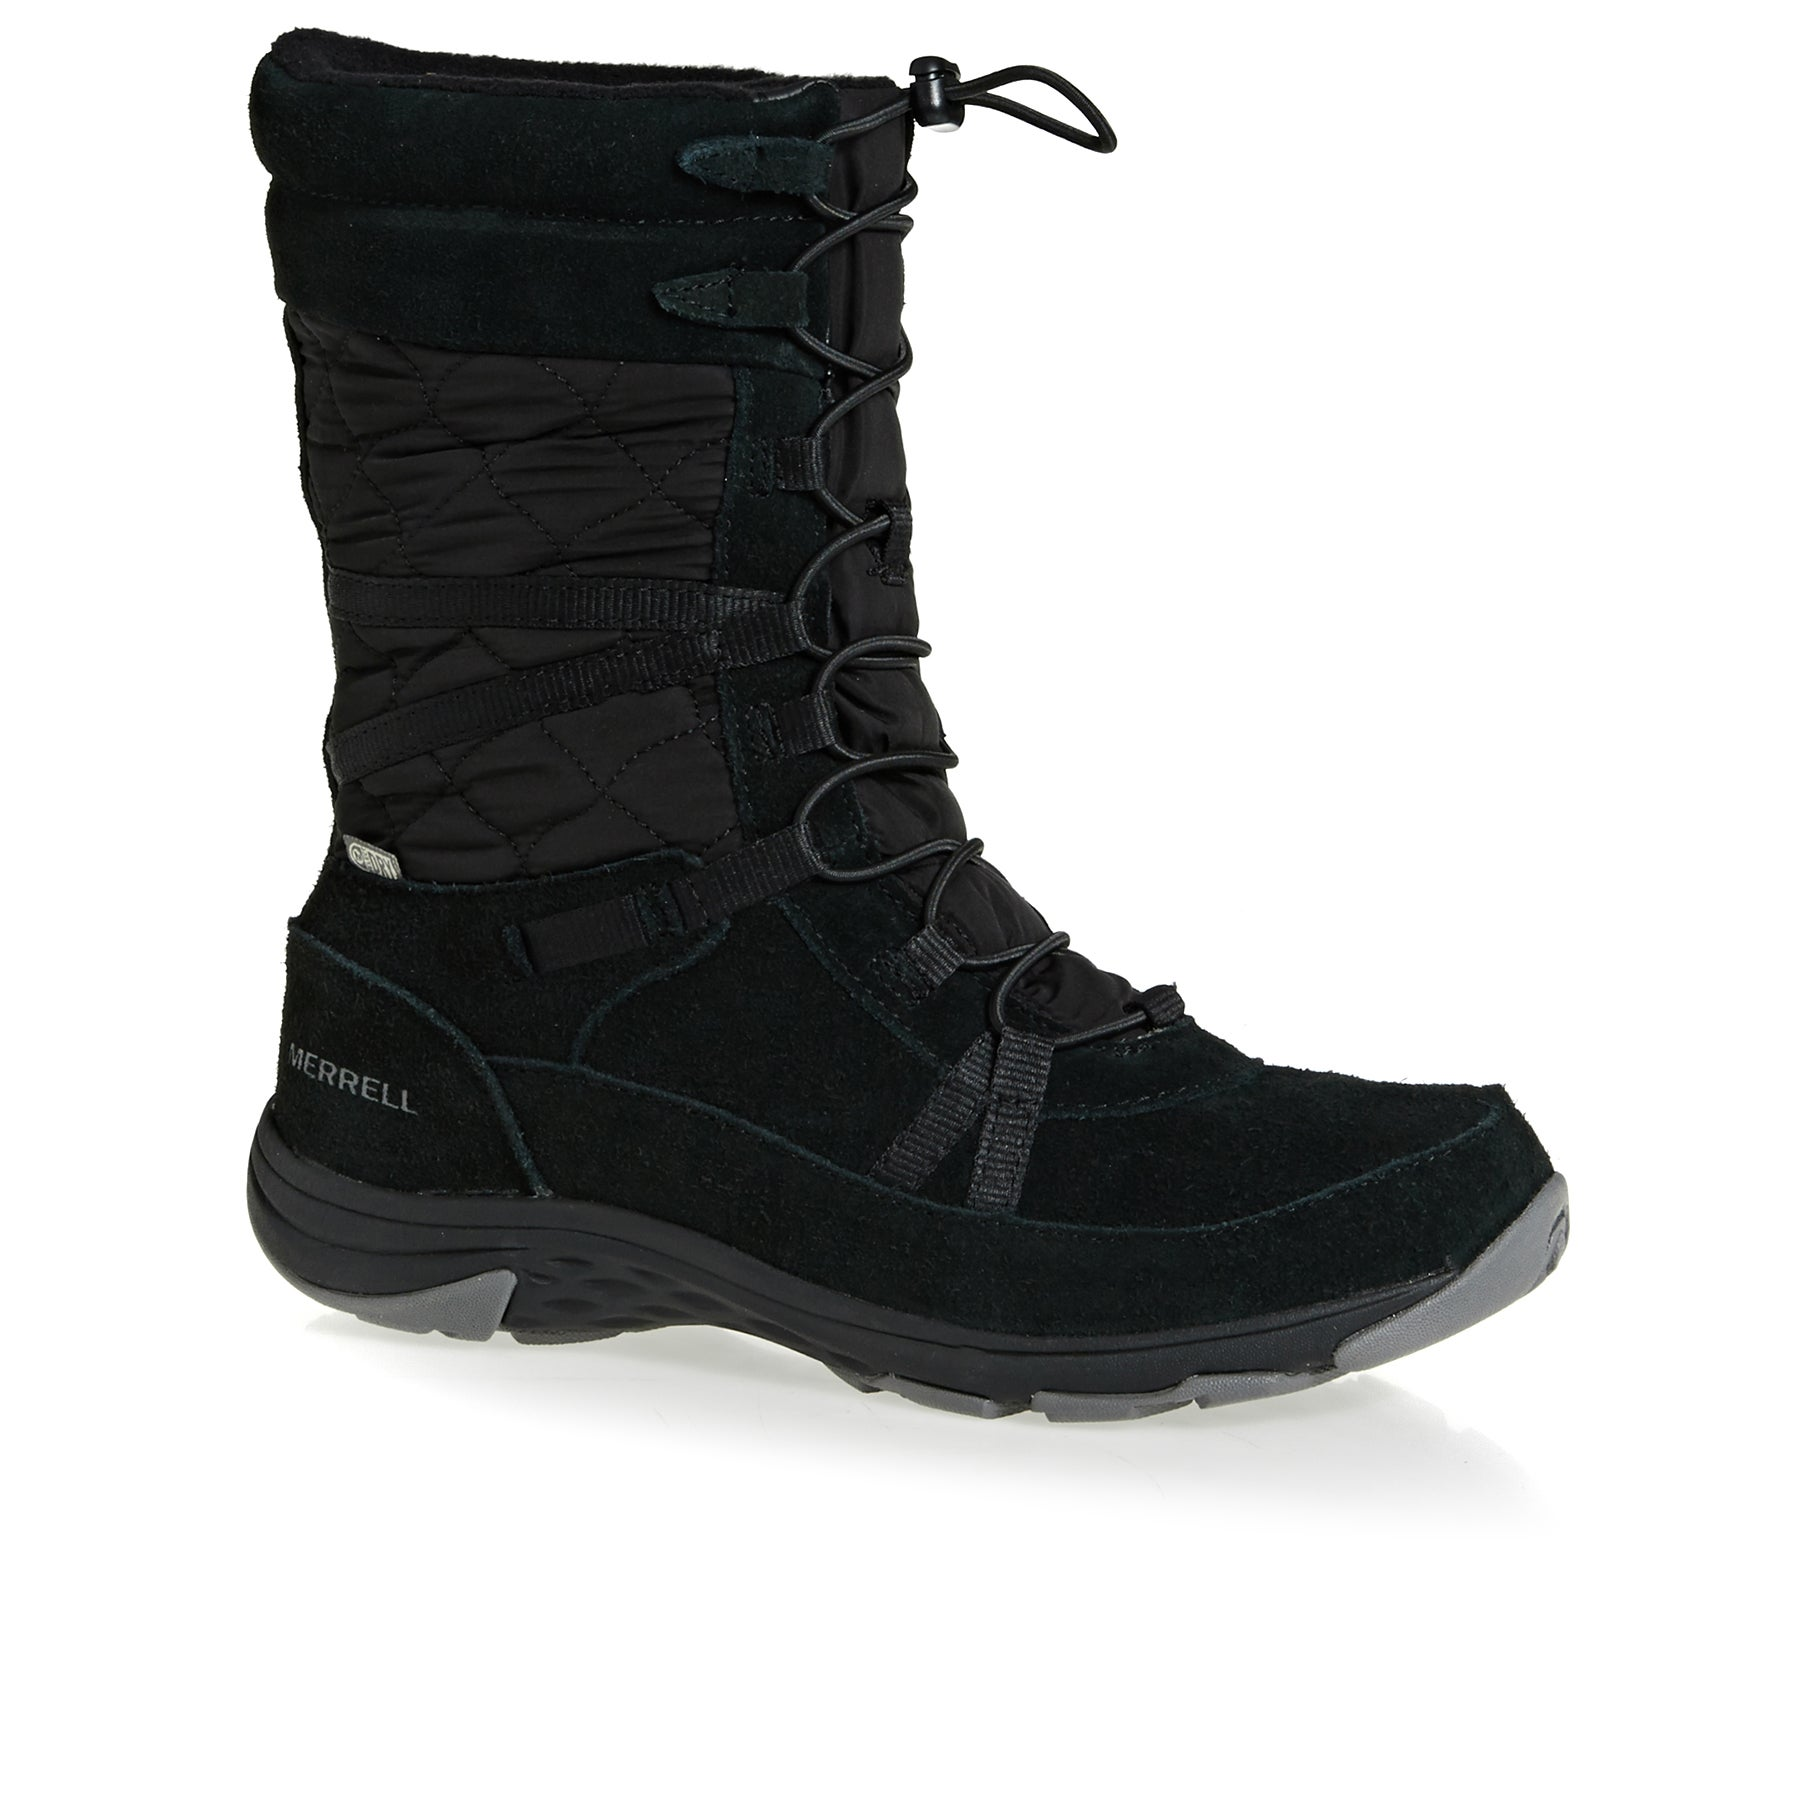 Merrell Approach Tall Womens Boots - Black